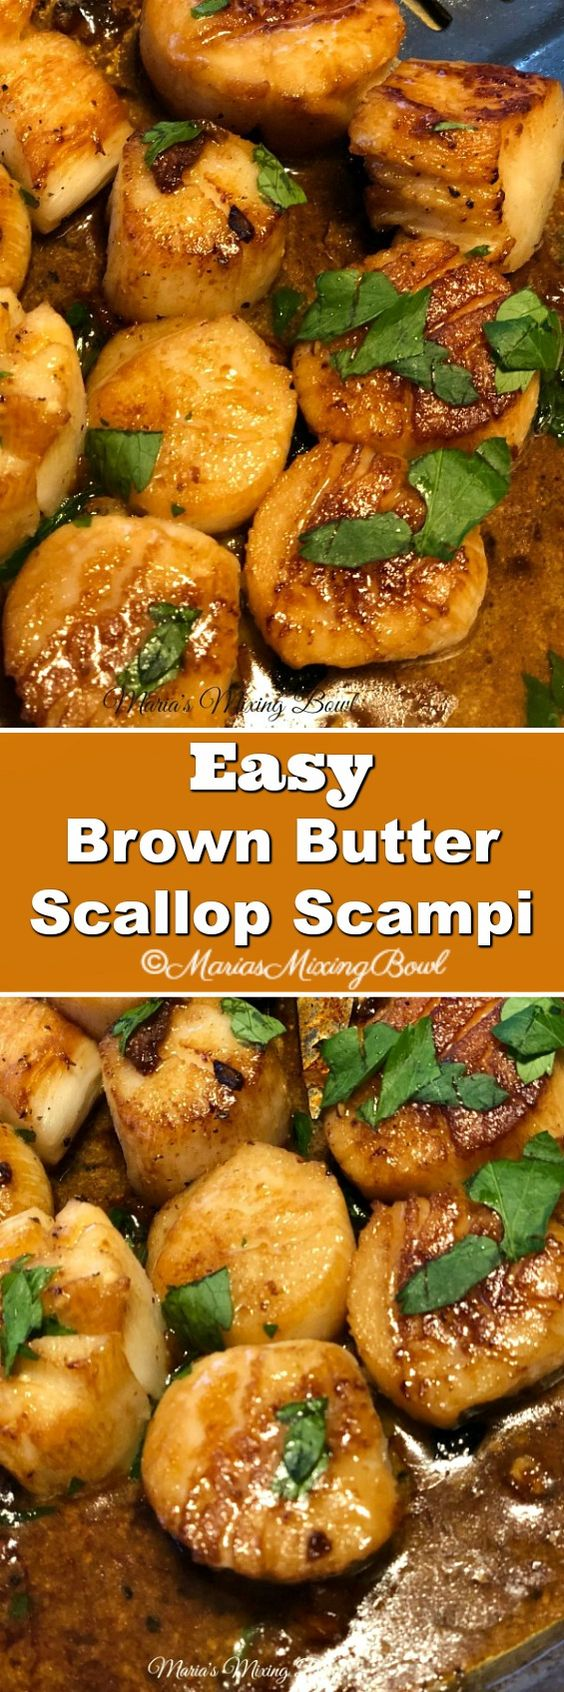 Easy Brown Butter Scallop Scampi - Delicious garlic scallops, seared to a golden perfection in browned butter and garlic and just a few other simple ingredients that make this a simple must make meal.